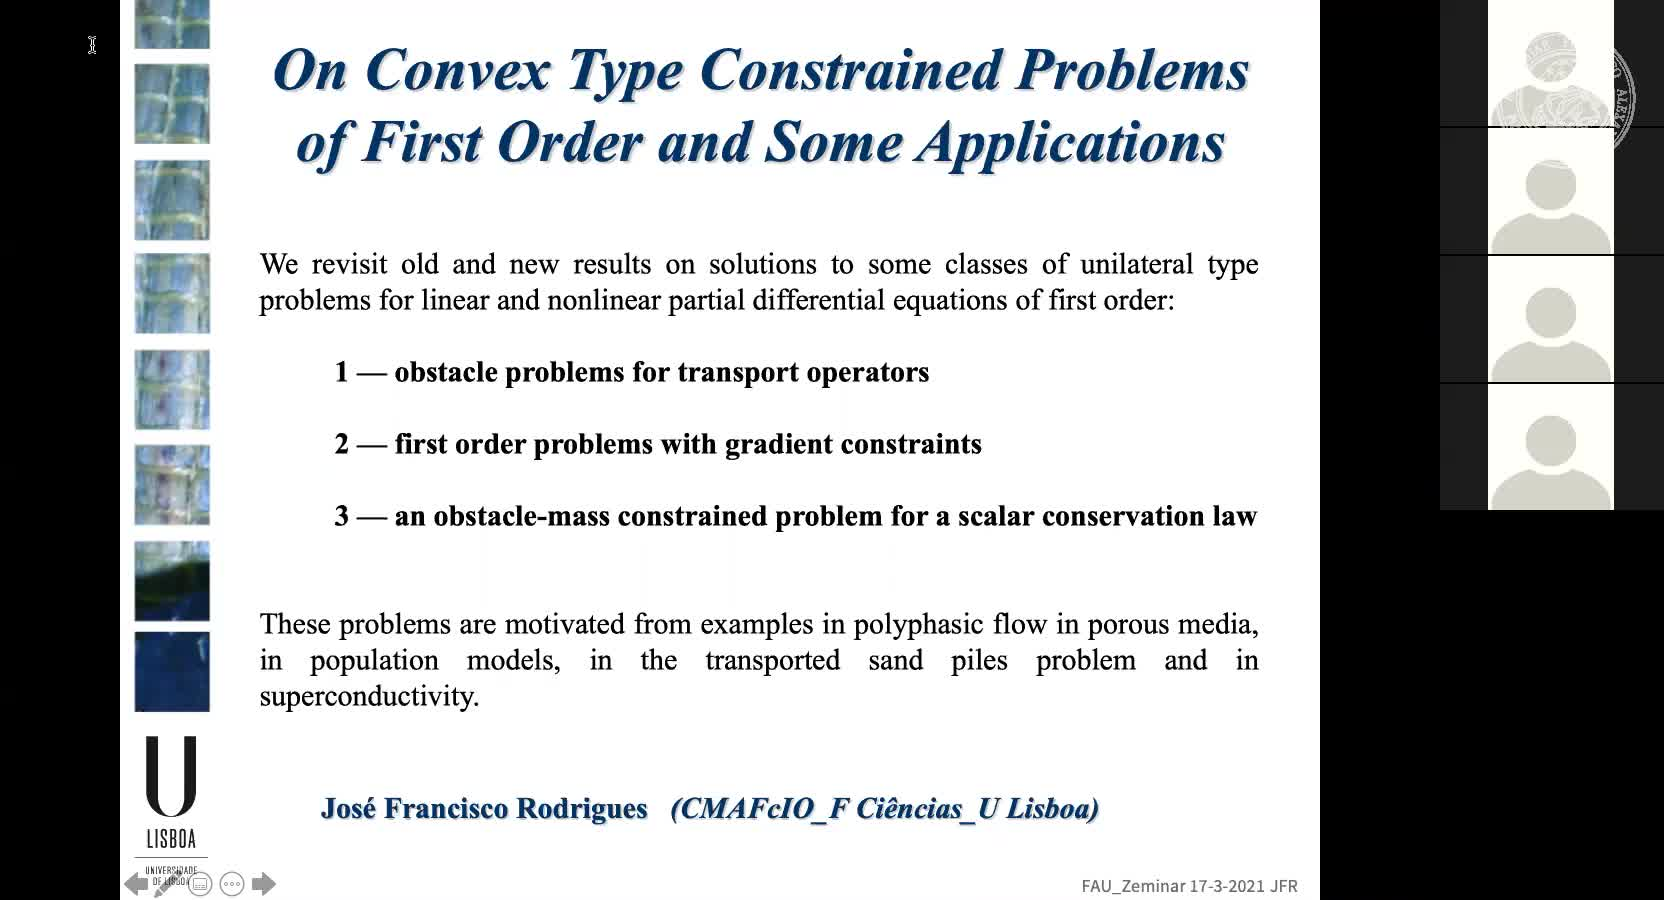 On Convex Type Constrained Problems of First Order and Some Applications (J. F. Rodrigues, University of Lisbon, Portugal) preview image